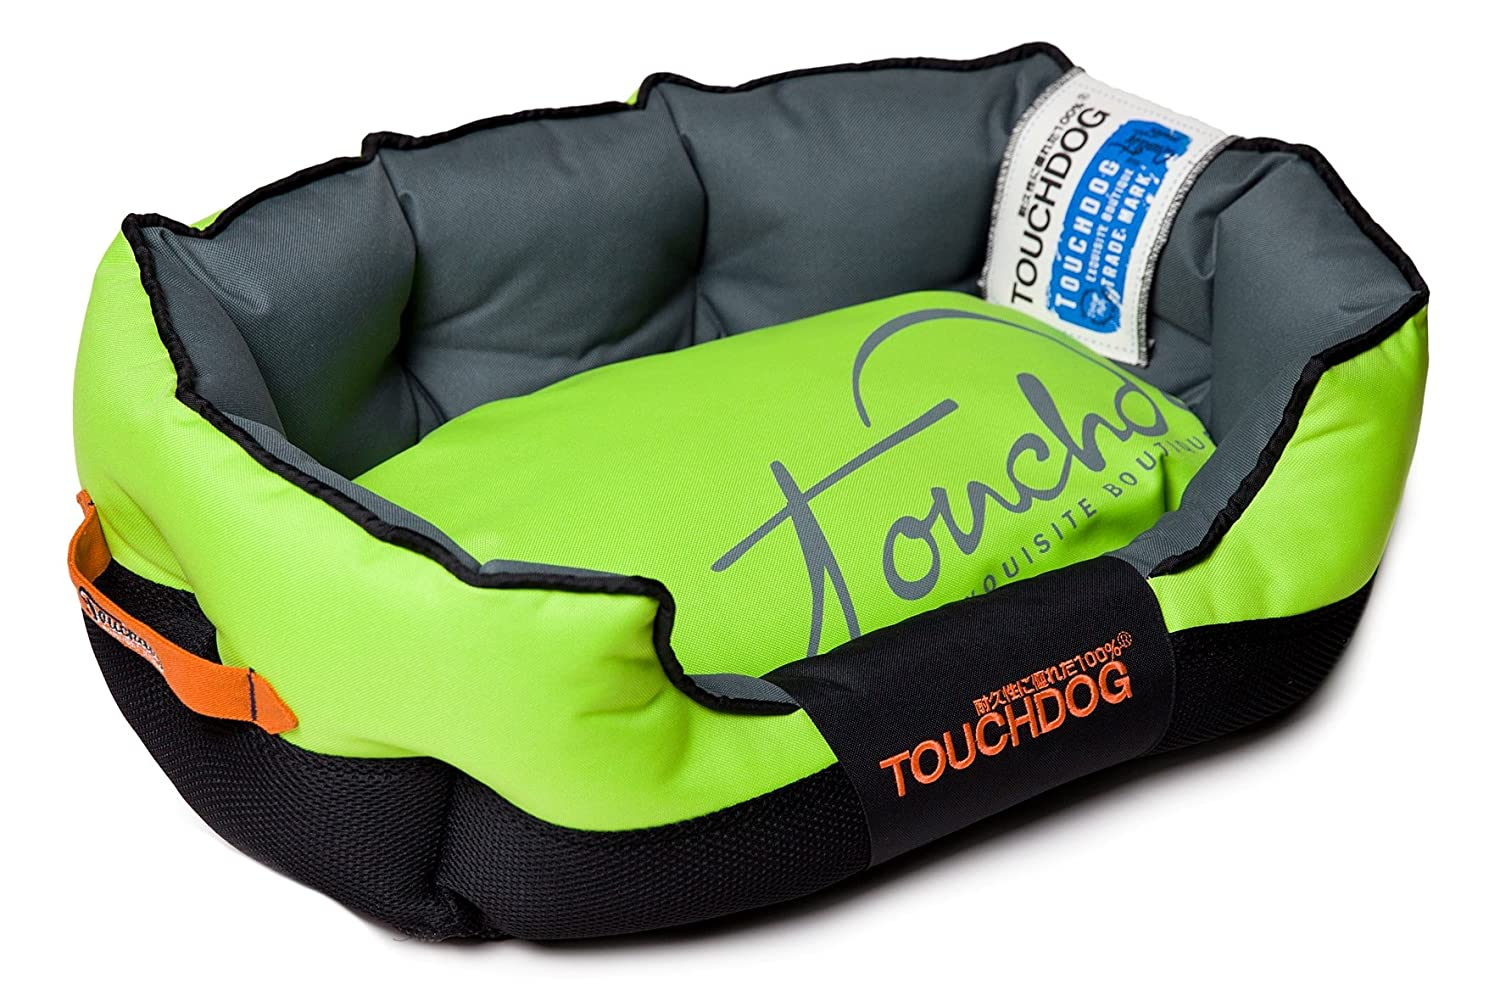 TOUCHDOG 'Performance-Max' Sporty Comfort Cushioned Reflective Water-Resistant Fashion Pet Dog Bed Mat, Medium, Mink Green, Black